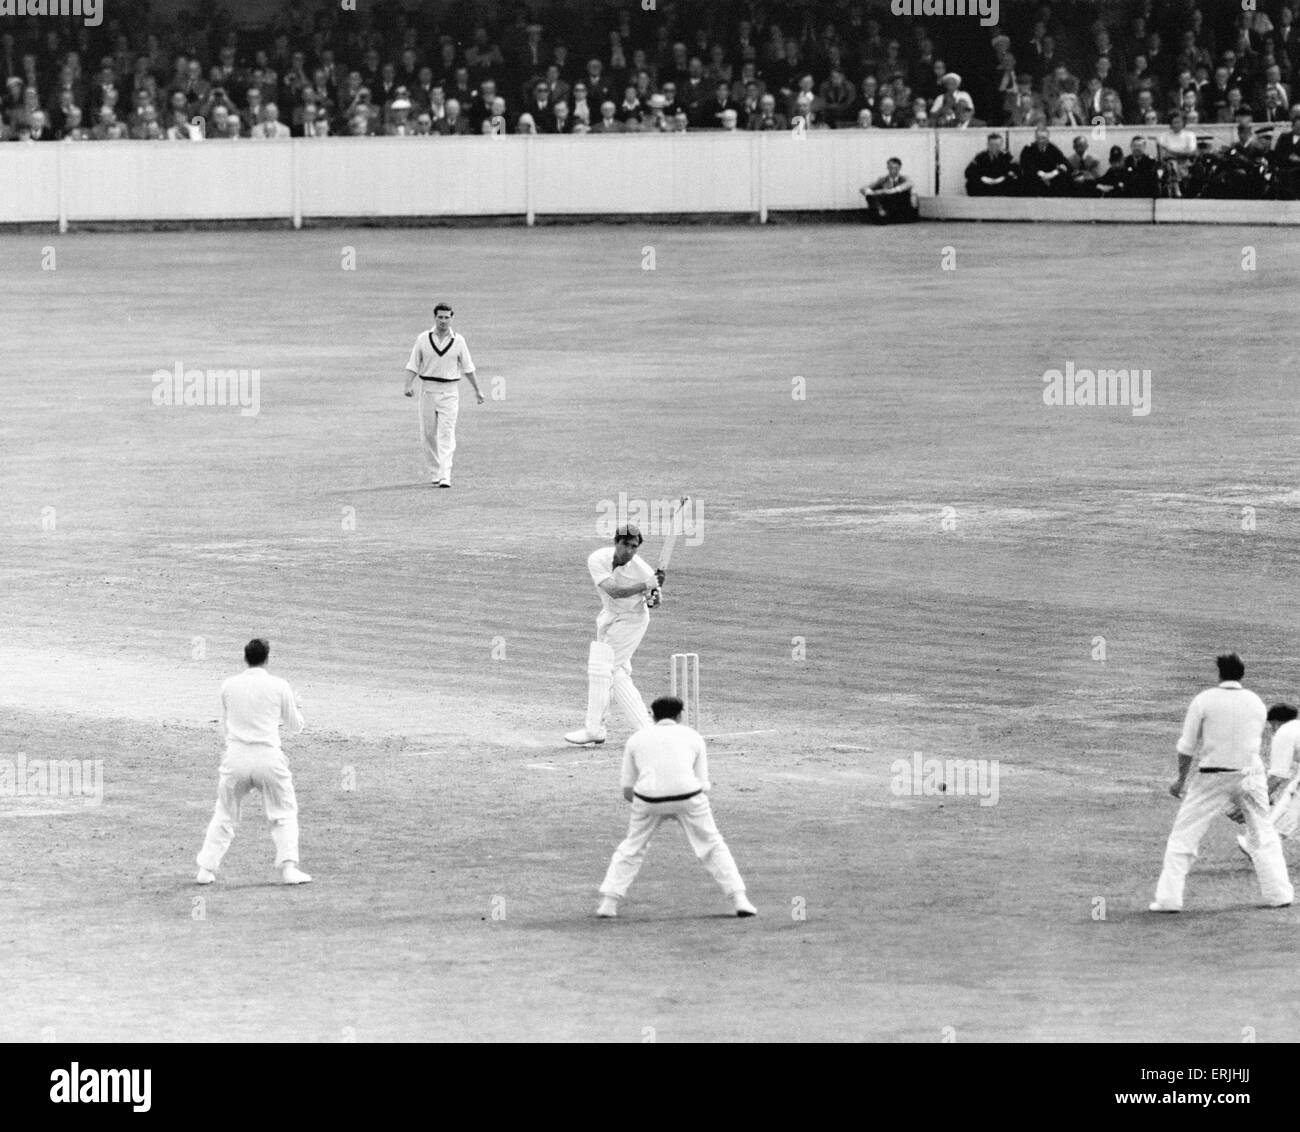 England v Australia Fifth Test match at the Oval for the Ashes. England batsman Denis Compton hits the winning runs - Stock Image